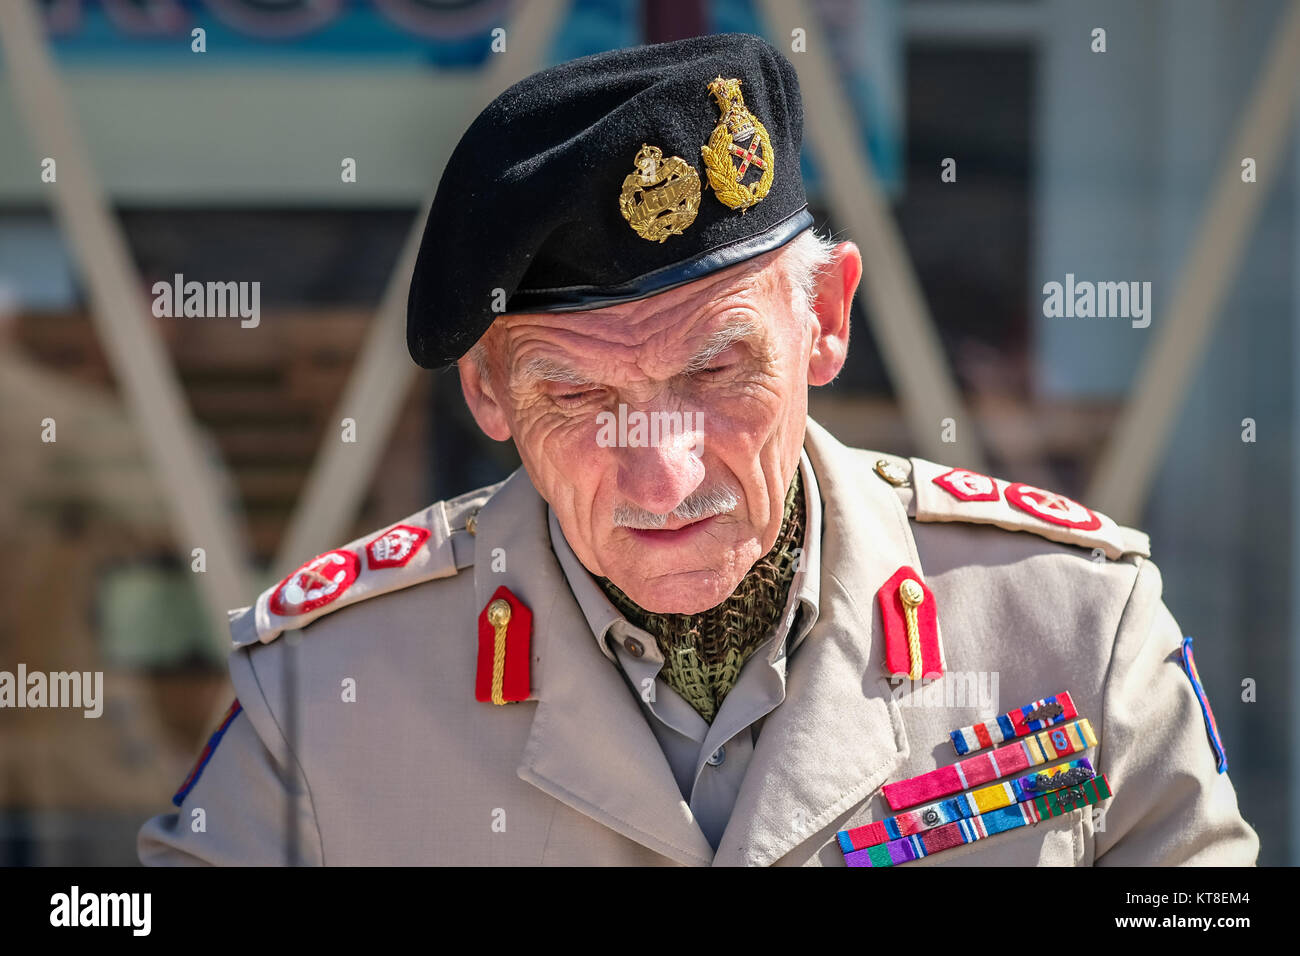 'Montgomery' 1940s Re-enactor at the Black Country Living Museum in Dudley, England, UK - Stock Image